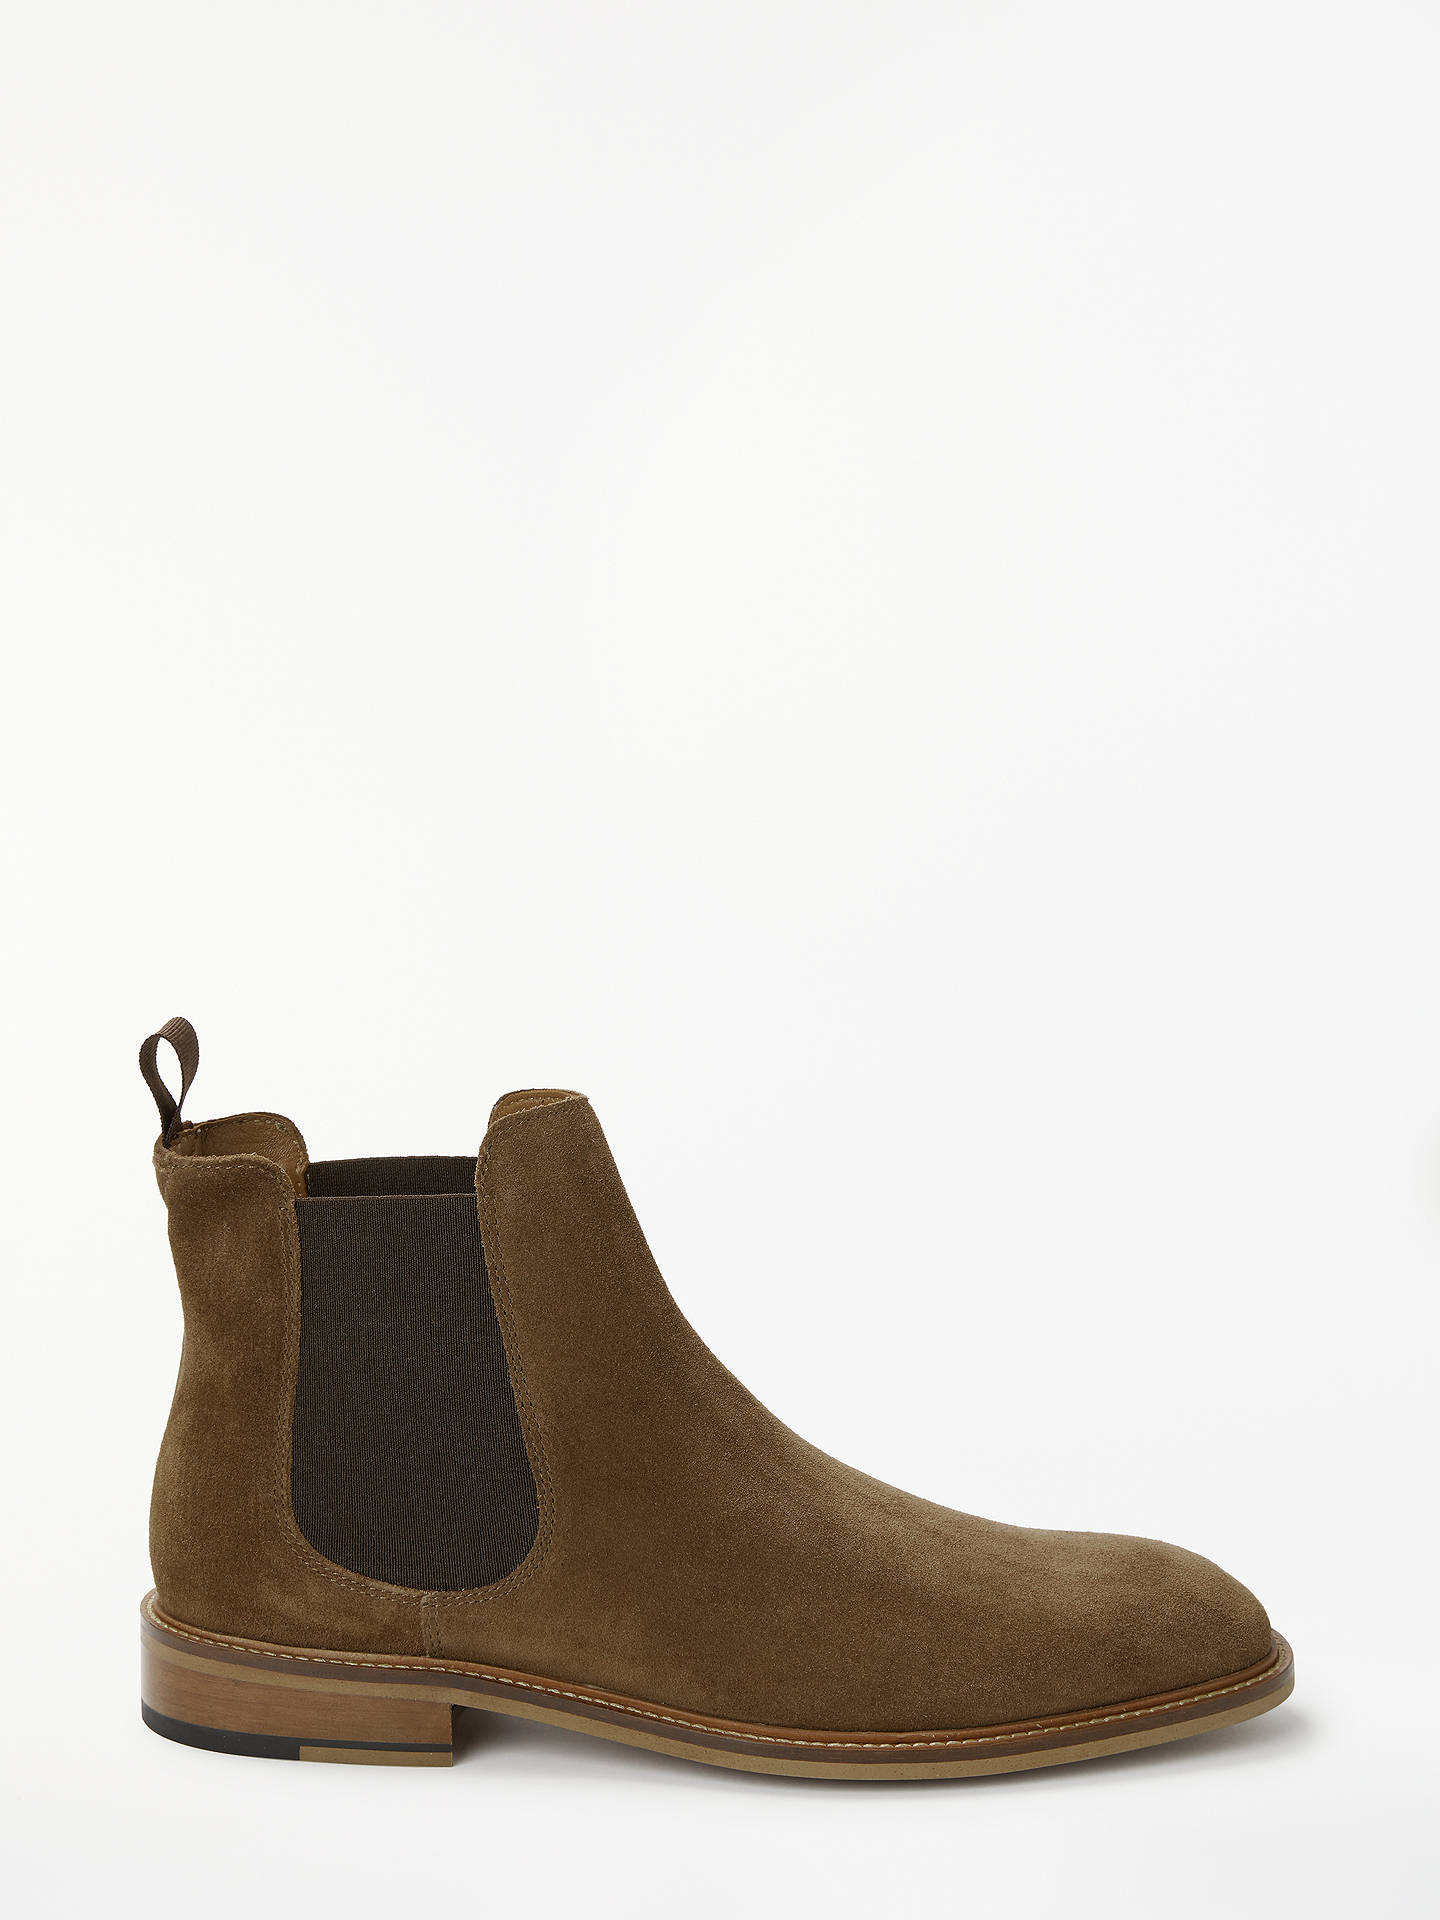 af380d9628b Buy John Lewis & Partners Chester Chelsea Boots, Brown, 8 Online at  johnlewis.